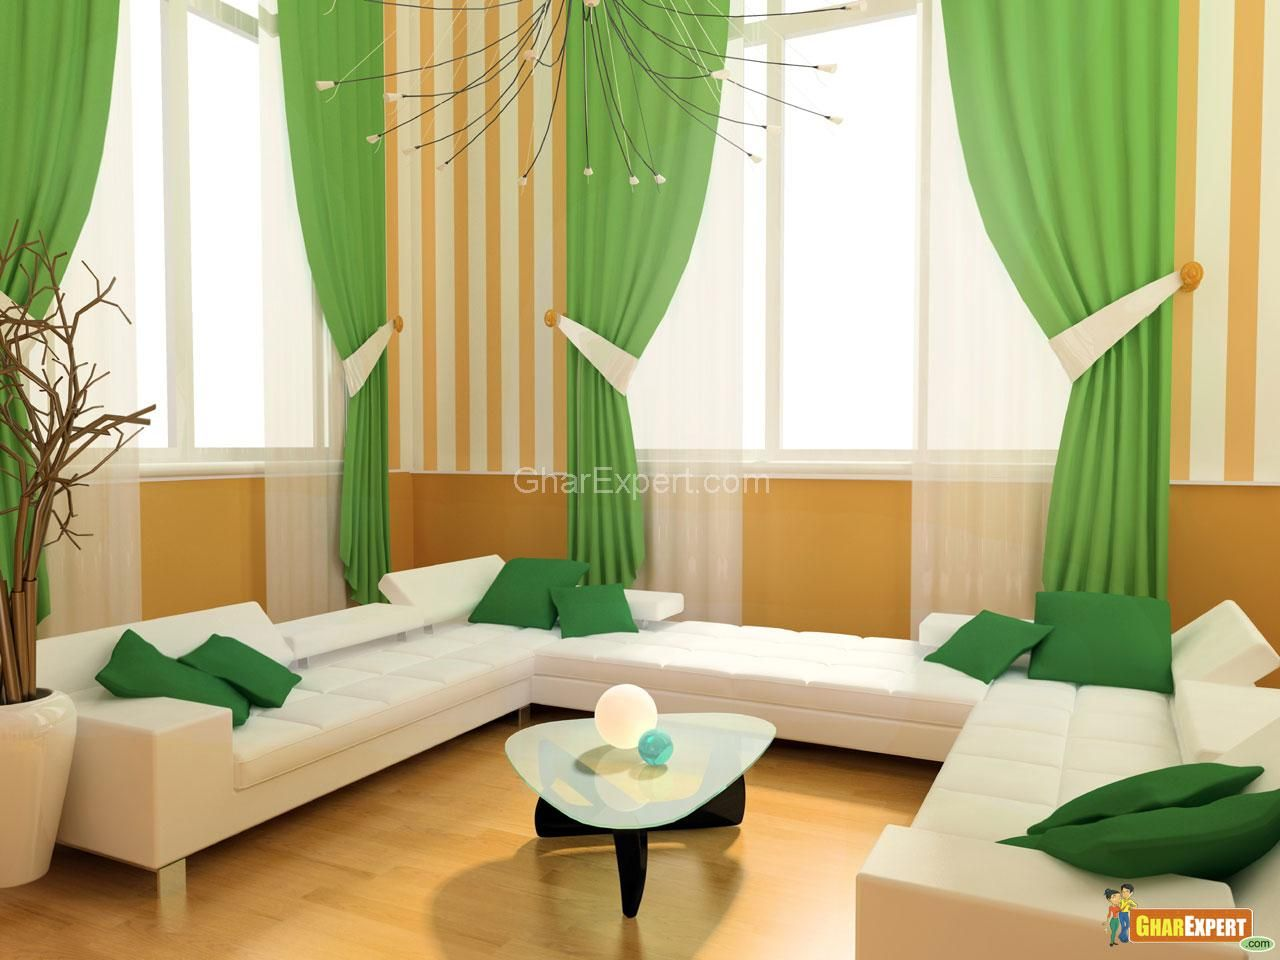 Curtain Designs For Living Room Greencurtaindesignsforlivingroomwindow  Curtains For Living